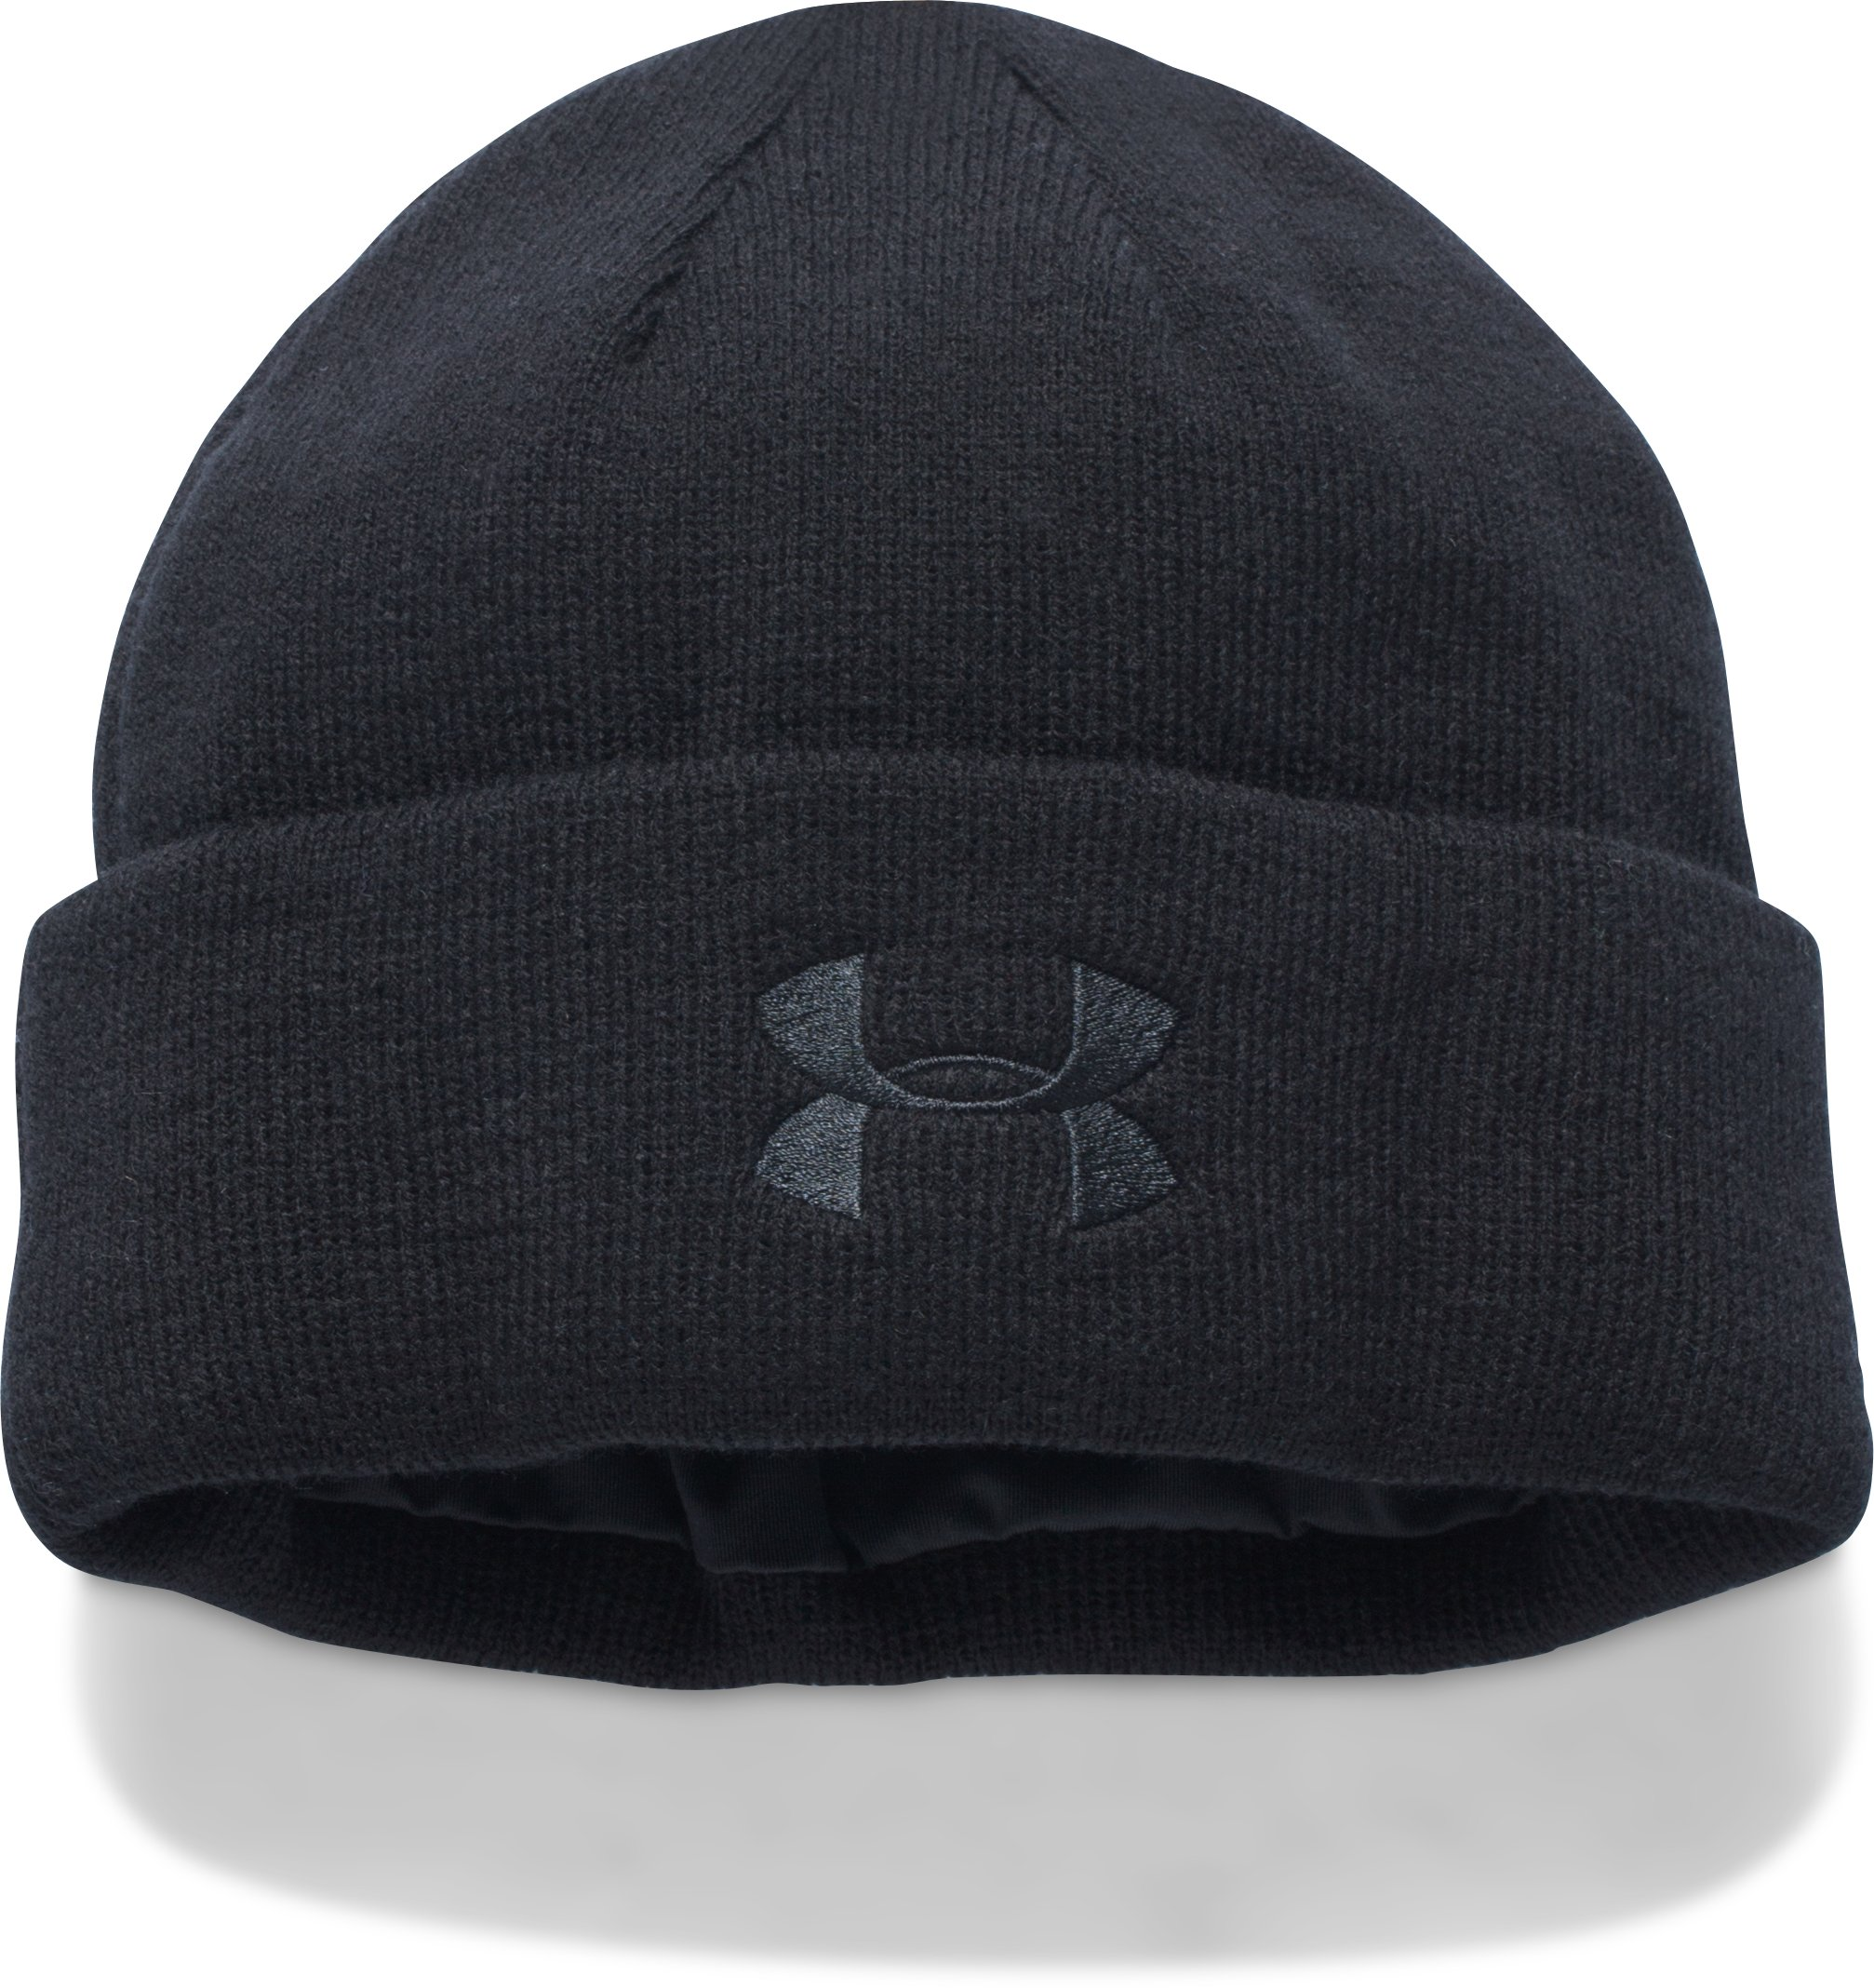 Men's Tactical Stealth Beanie 2 Colors $14.99